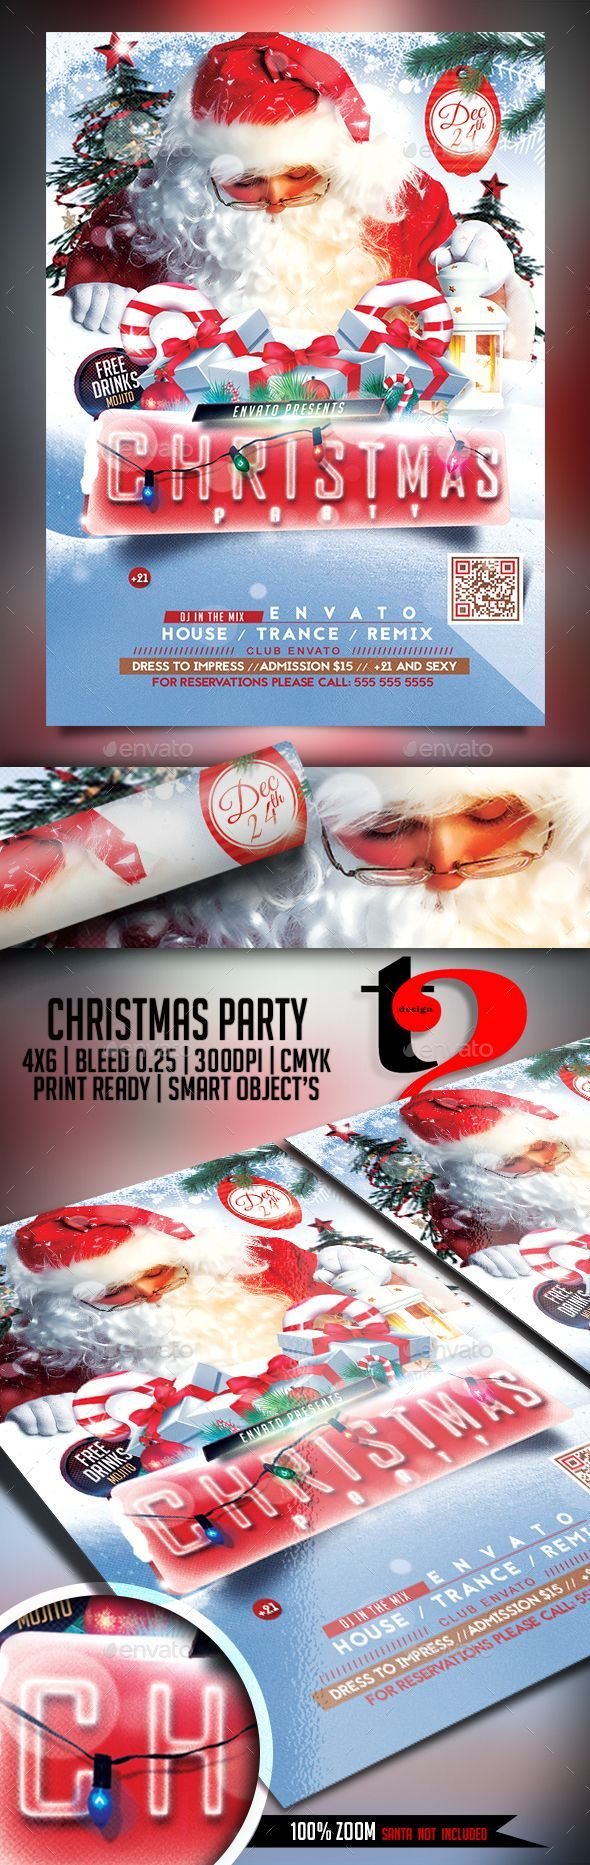 68 best Idea images on Pinterest | Flyer template, Party flyer and ...